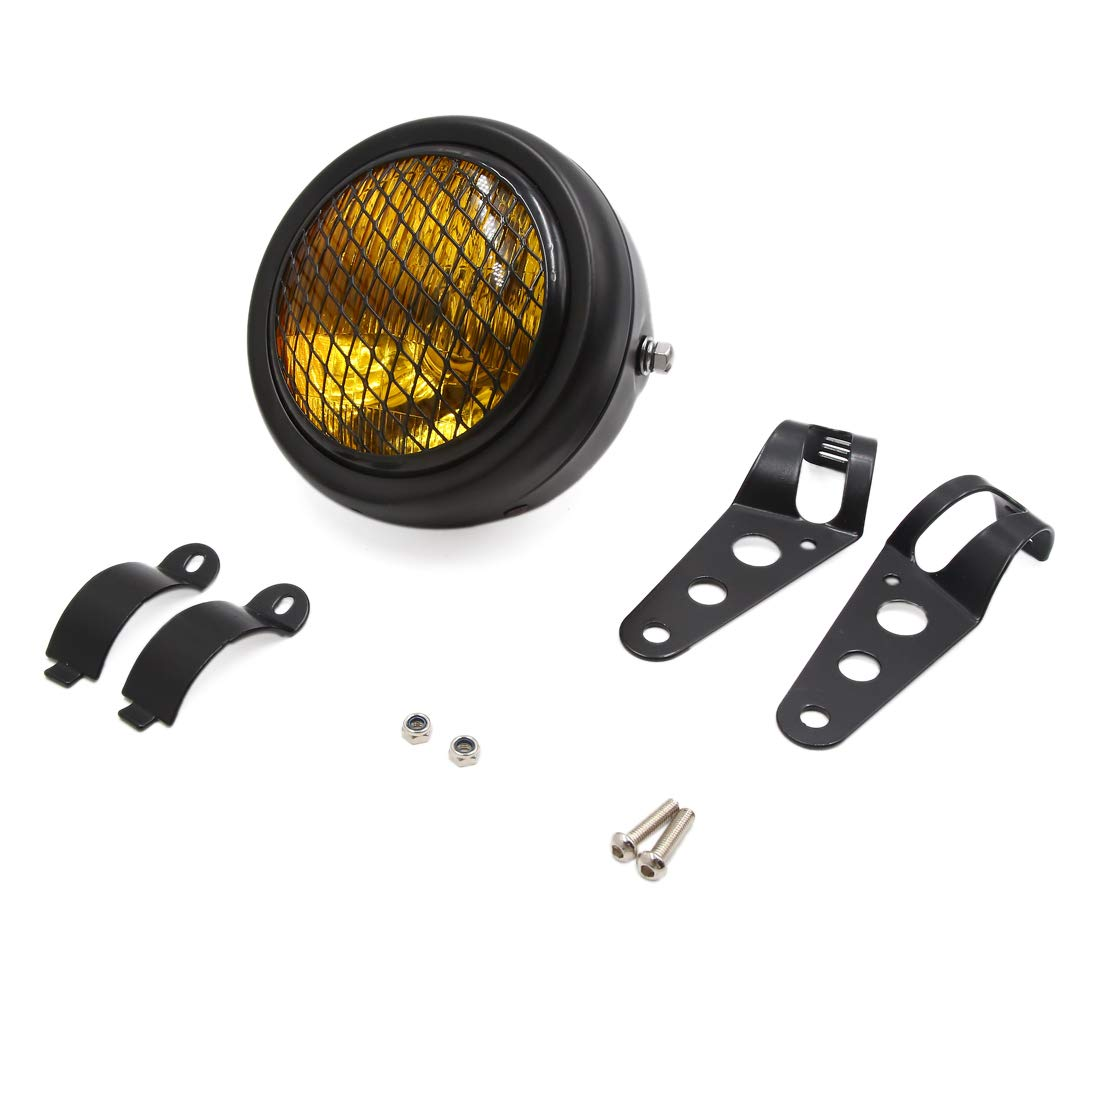 uxcell Black 12V 30W Yellow Light Round Shaped Headlight Head Lamp for Motorcycle